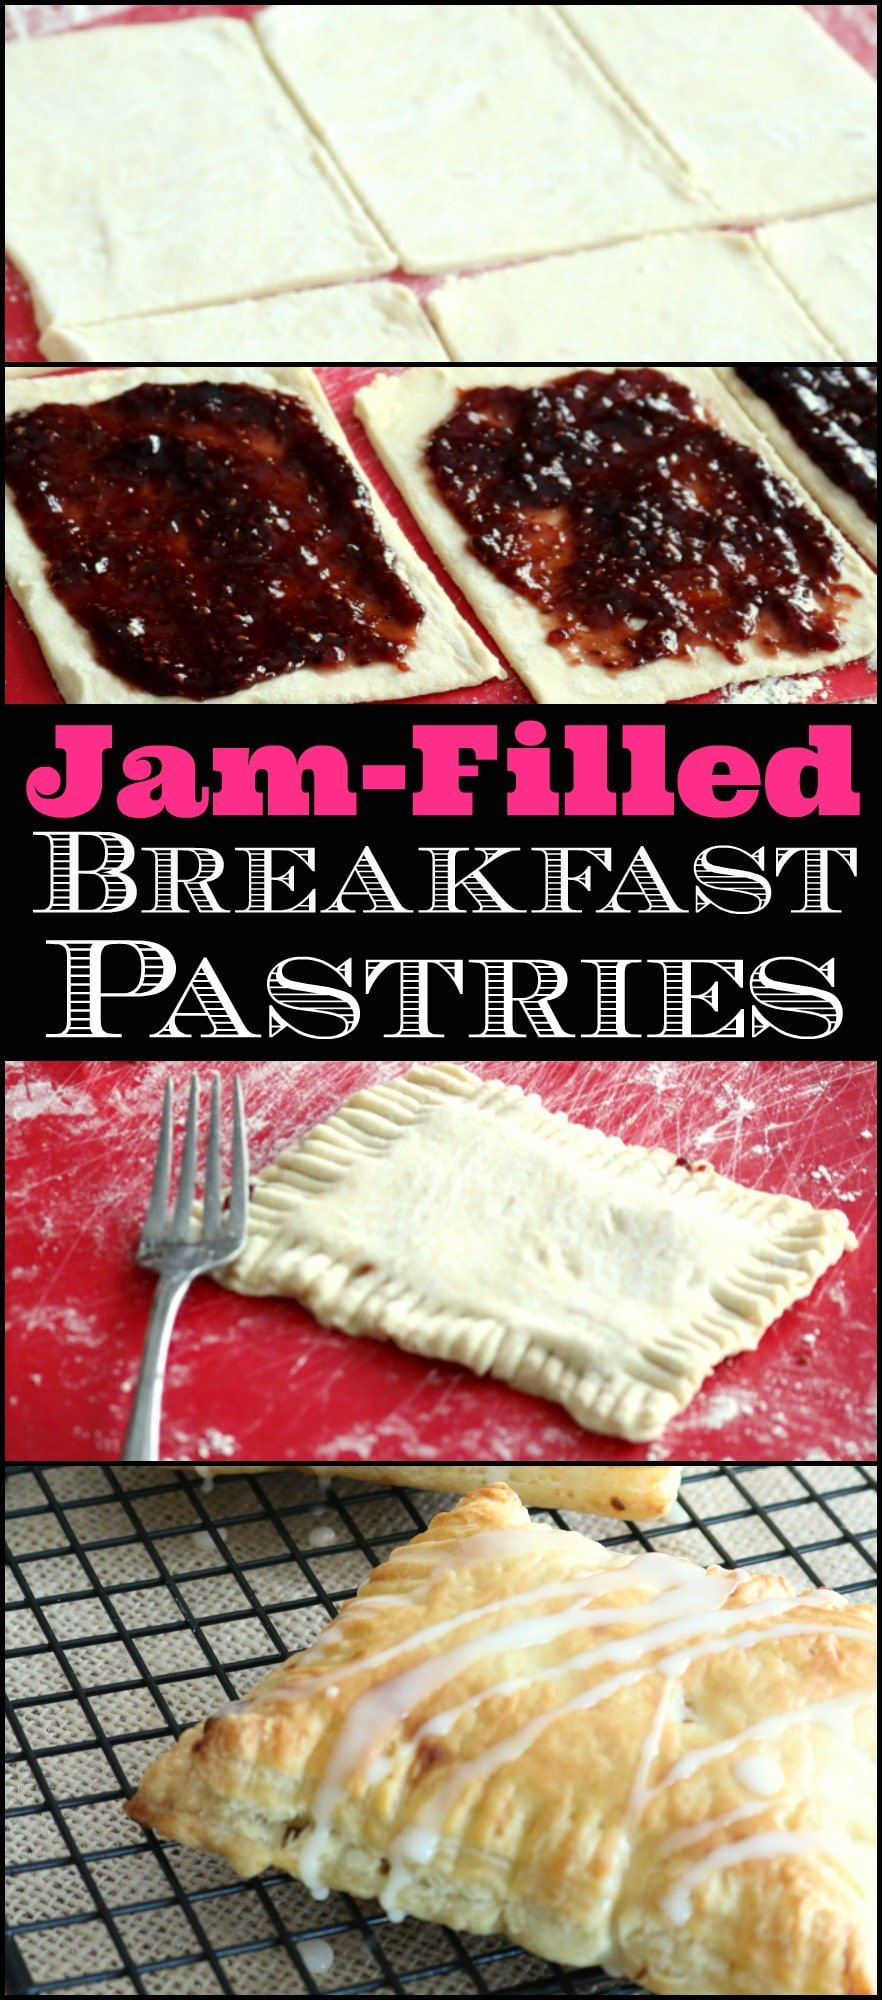 Similar to the Toaster Strudels you can buy in the frozen food section of your grocery store, these Breakfast Pastries taste nothing like what you get from the boxed variety. Ready in just 10-15 minutes in the oven.